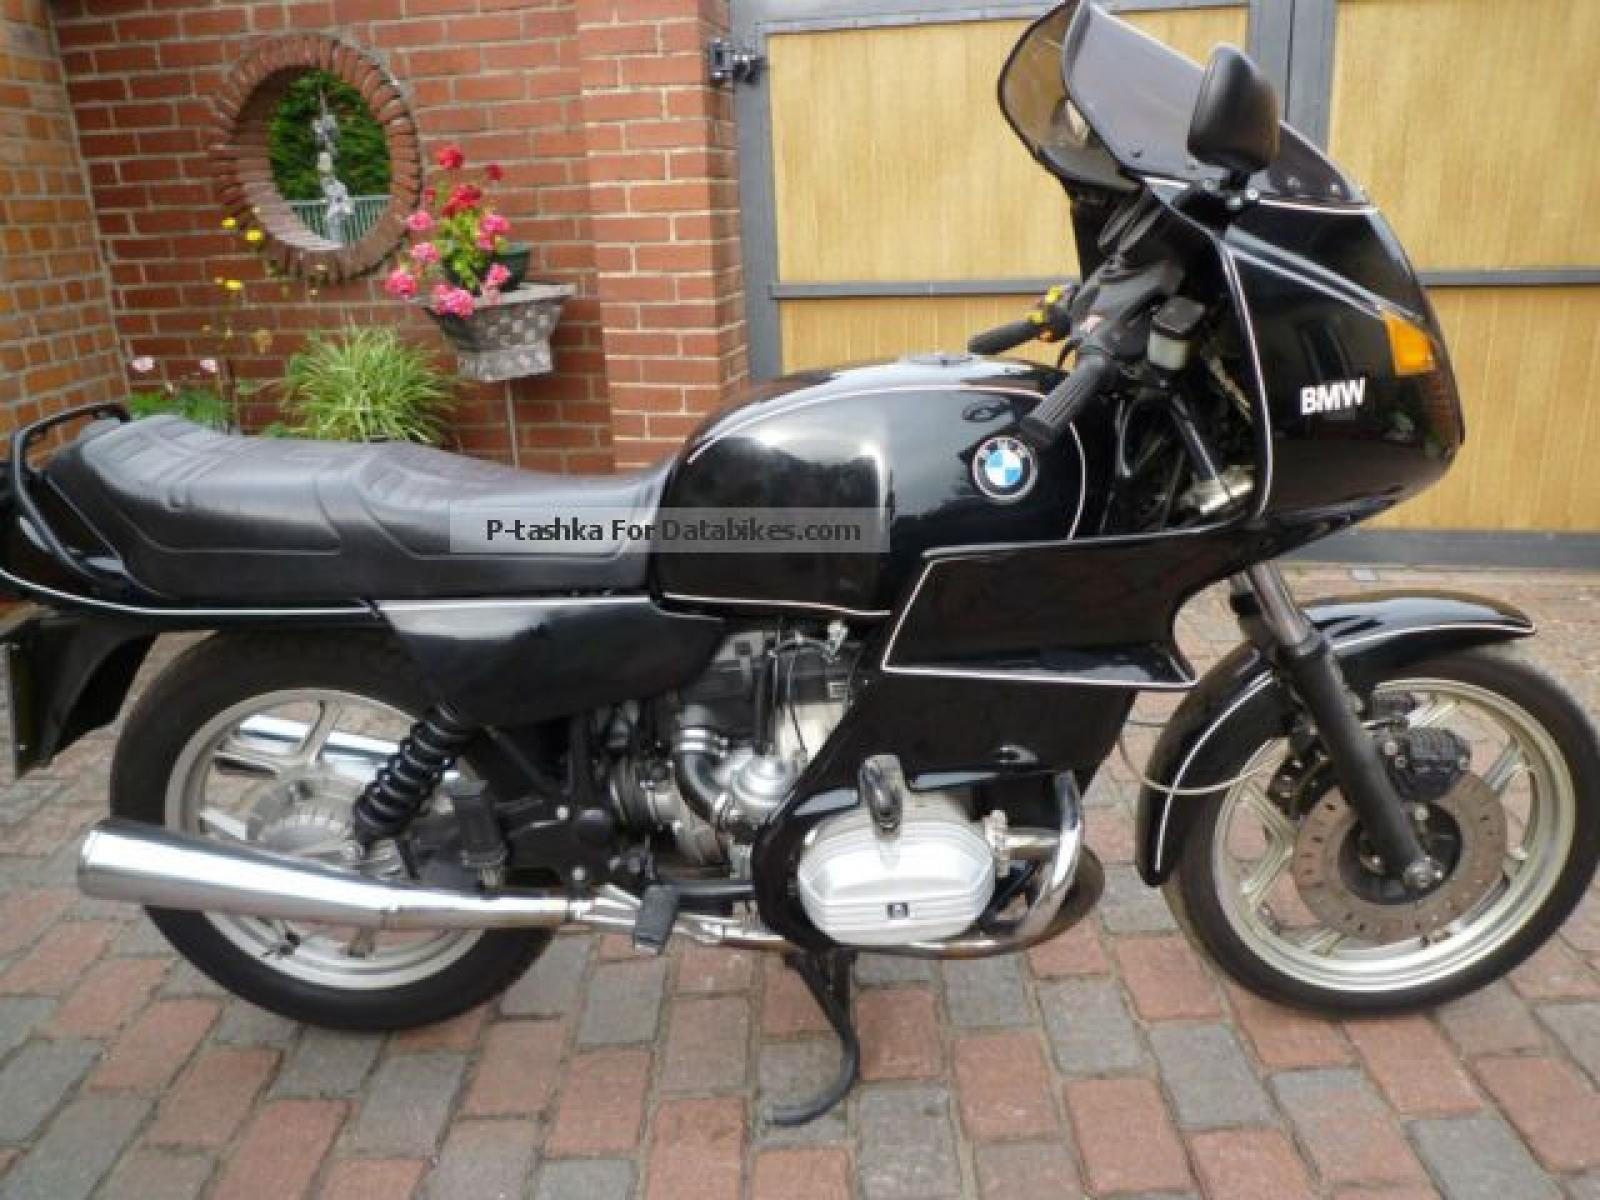 BMW R65 (reduced effect) 1989 images #14537